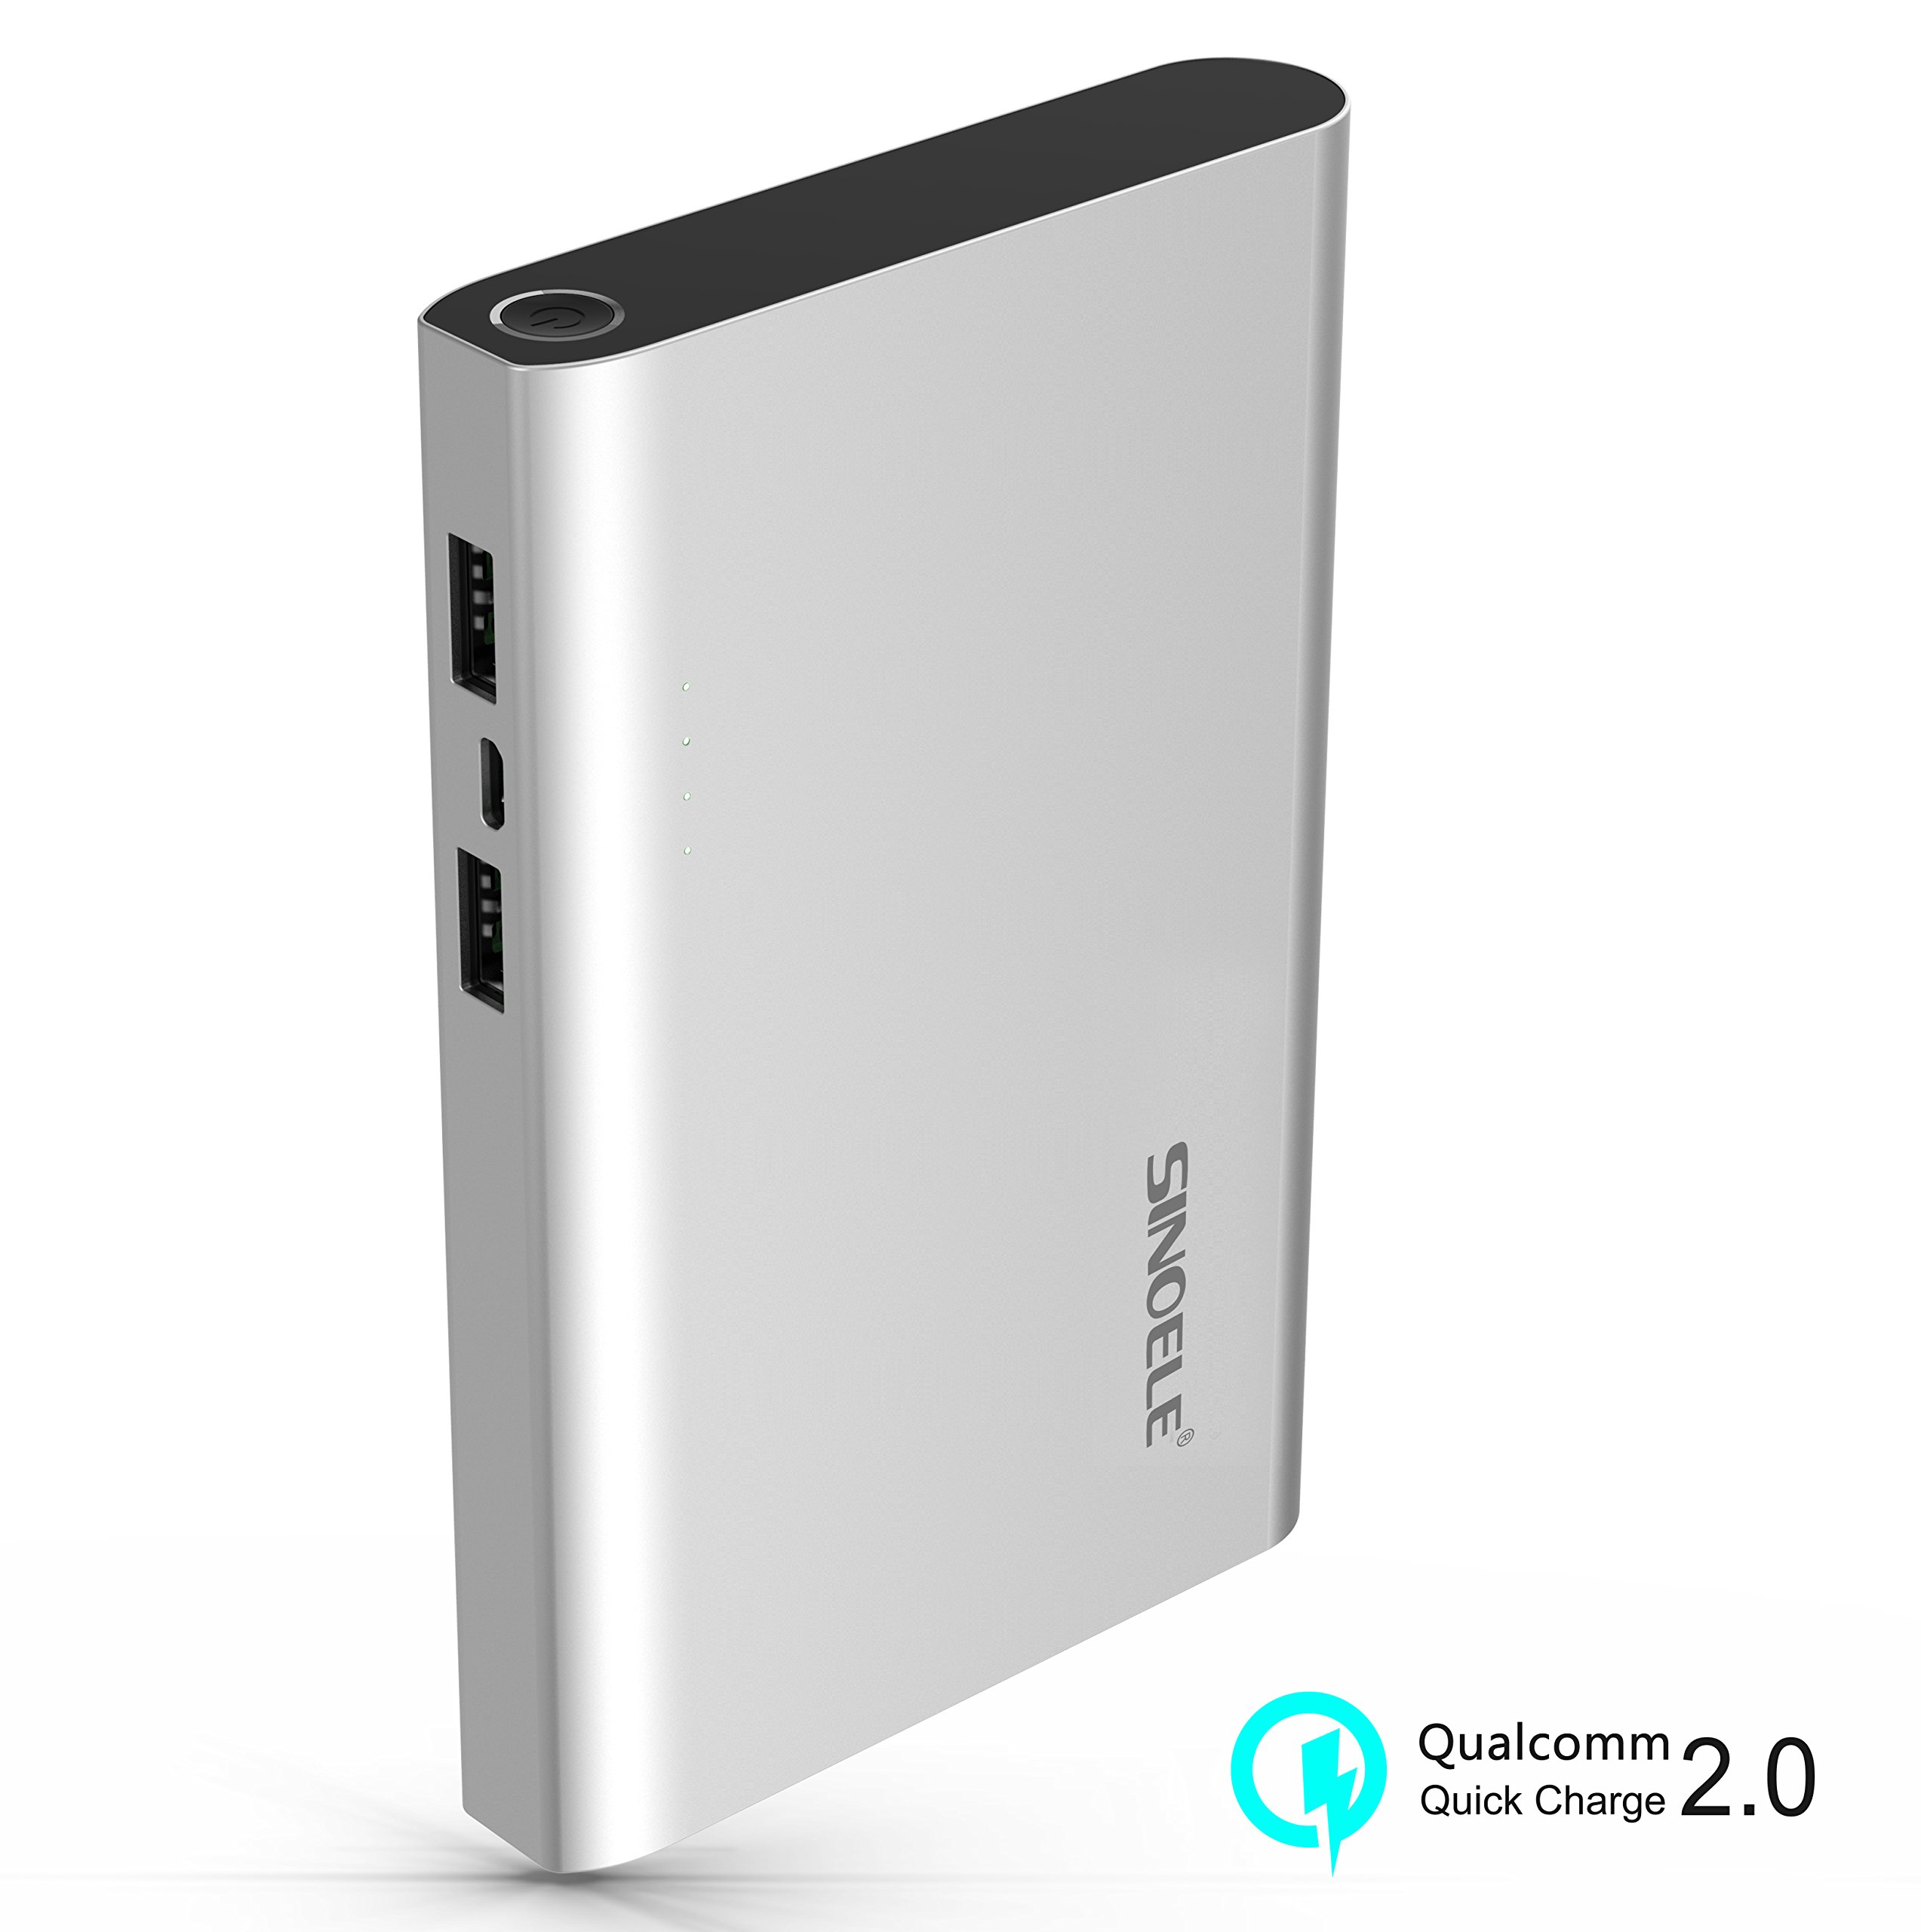 SINOELE Power Bank 30000mAh High Capacity Cell Phone External Battery Pack Fast Charging Universal for iPhone,iPad,Samsung,Huawei and More